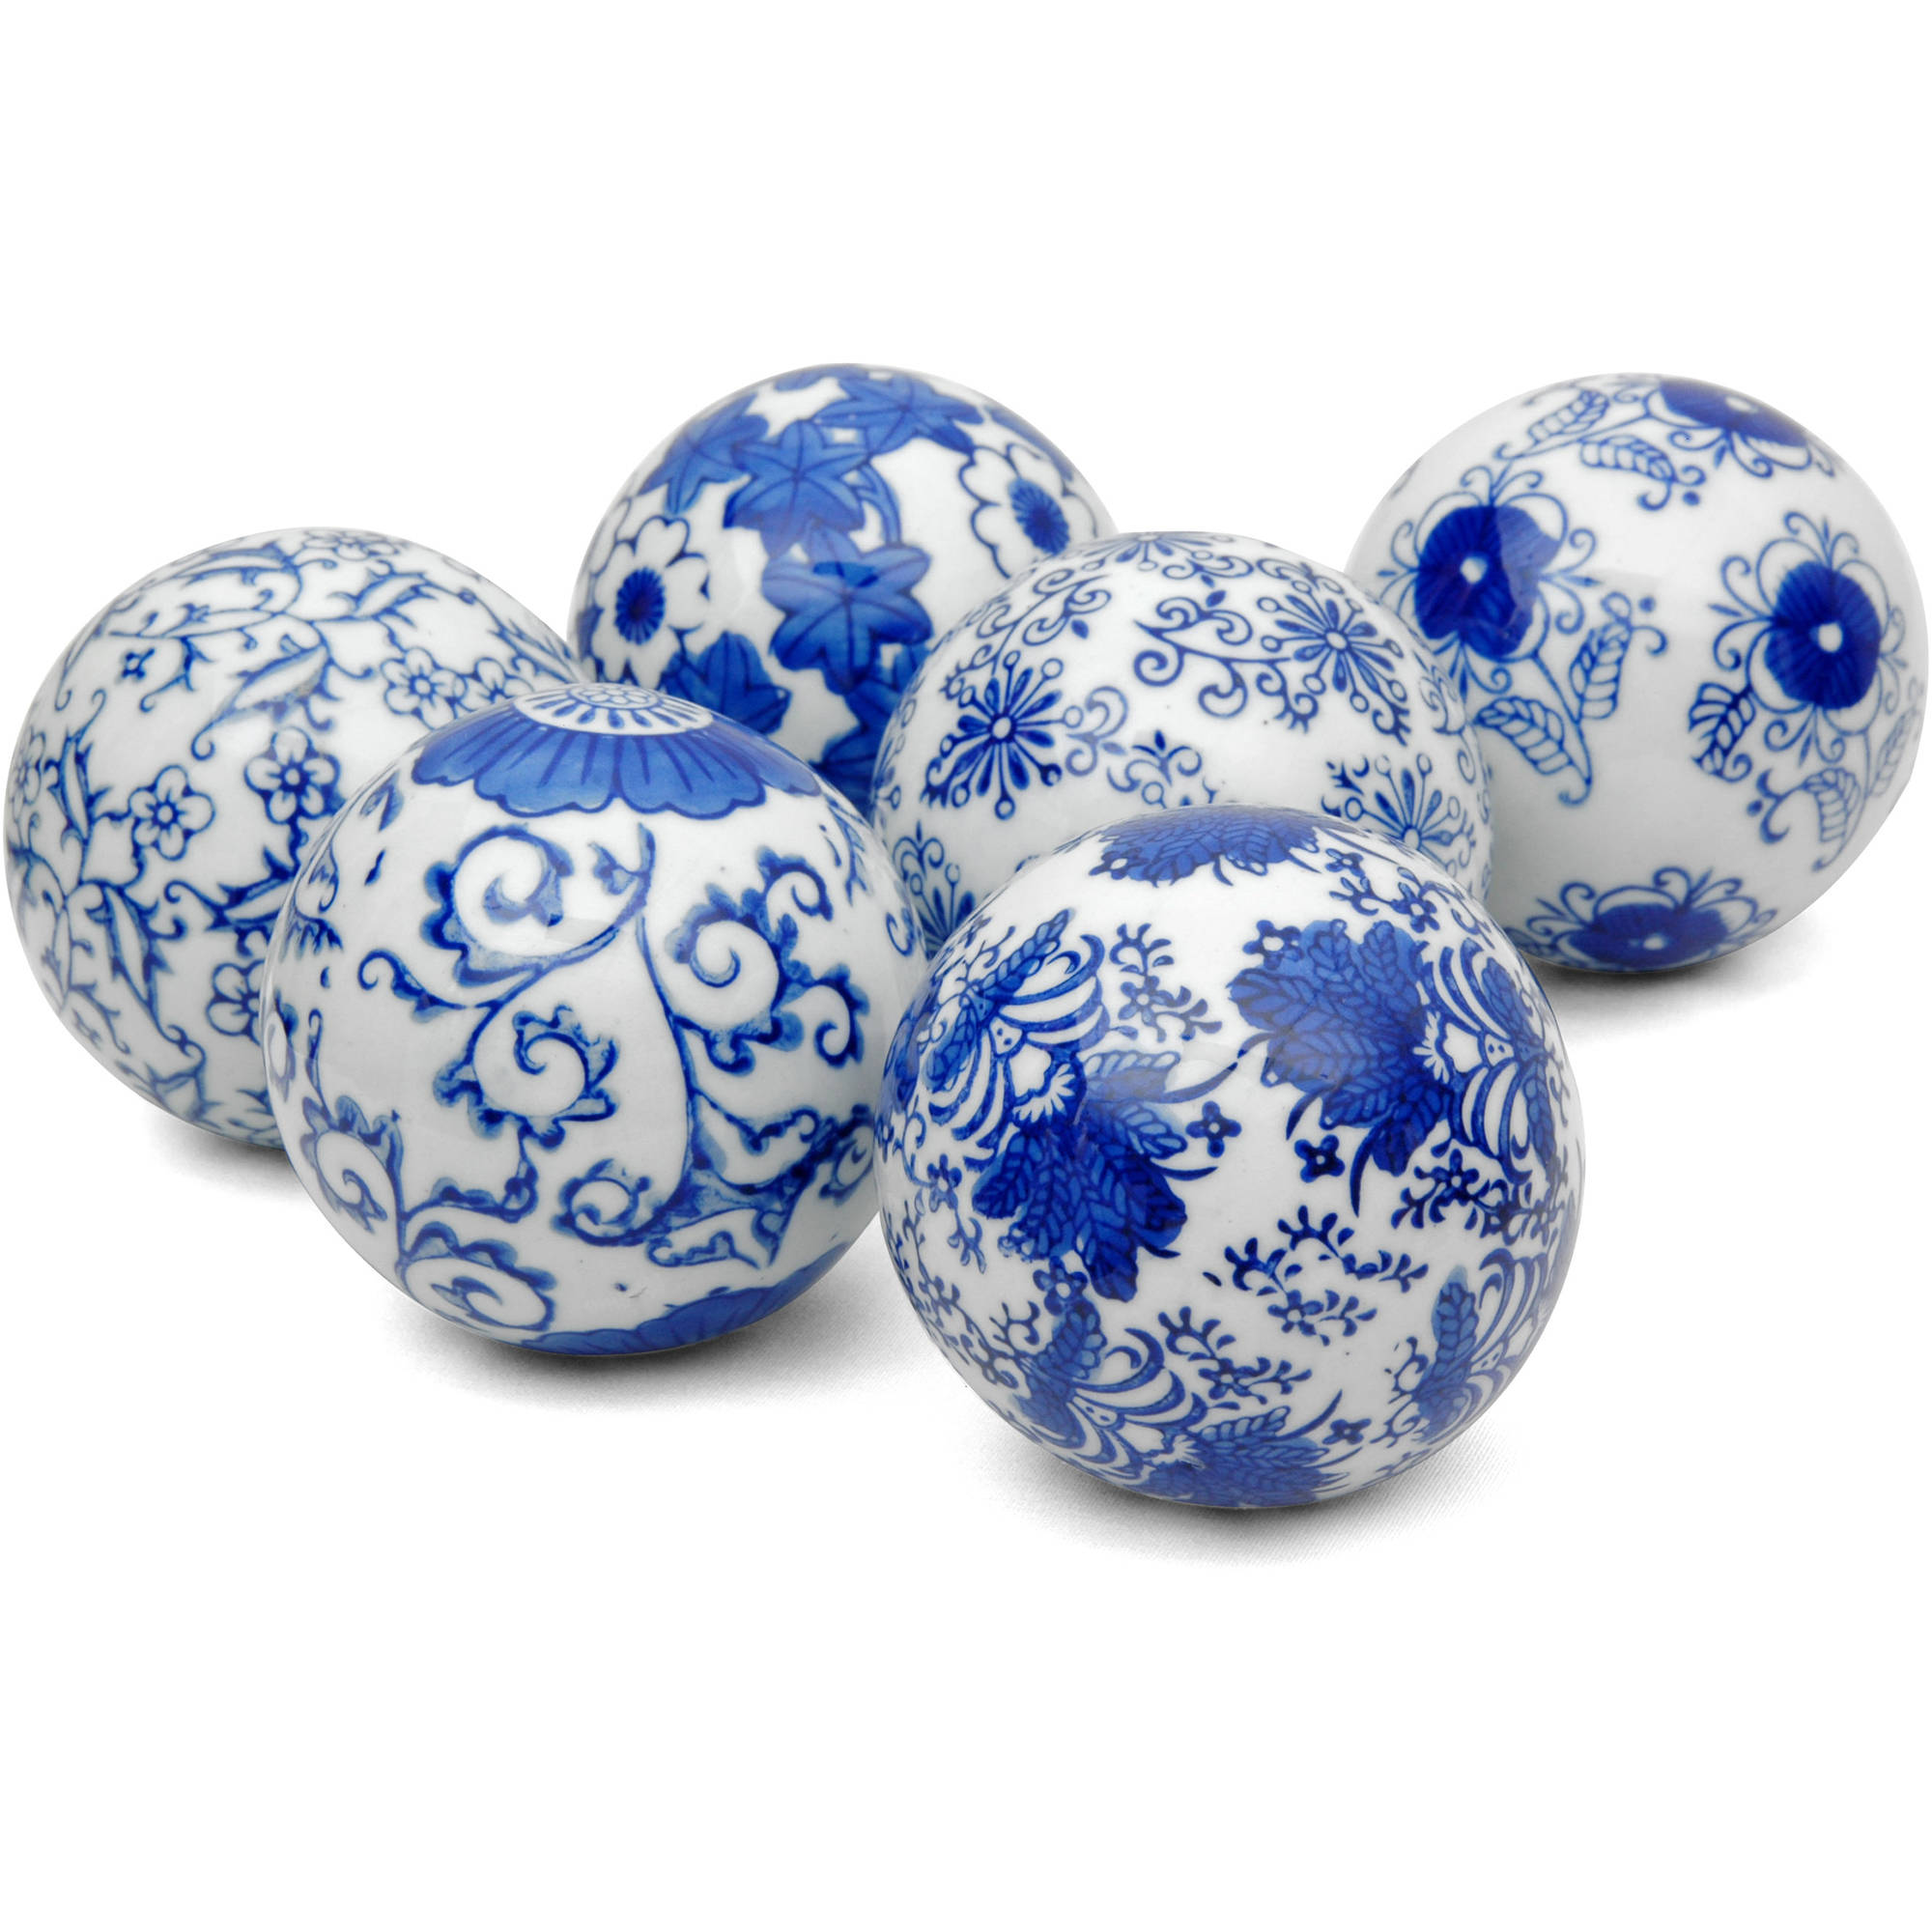 "3"" Blue & White Decorative Porcelain Ball Set, B by Oriental Furniture"